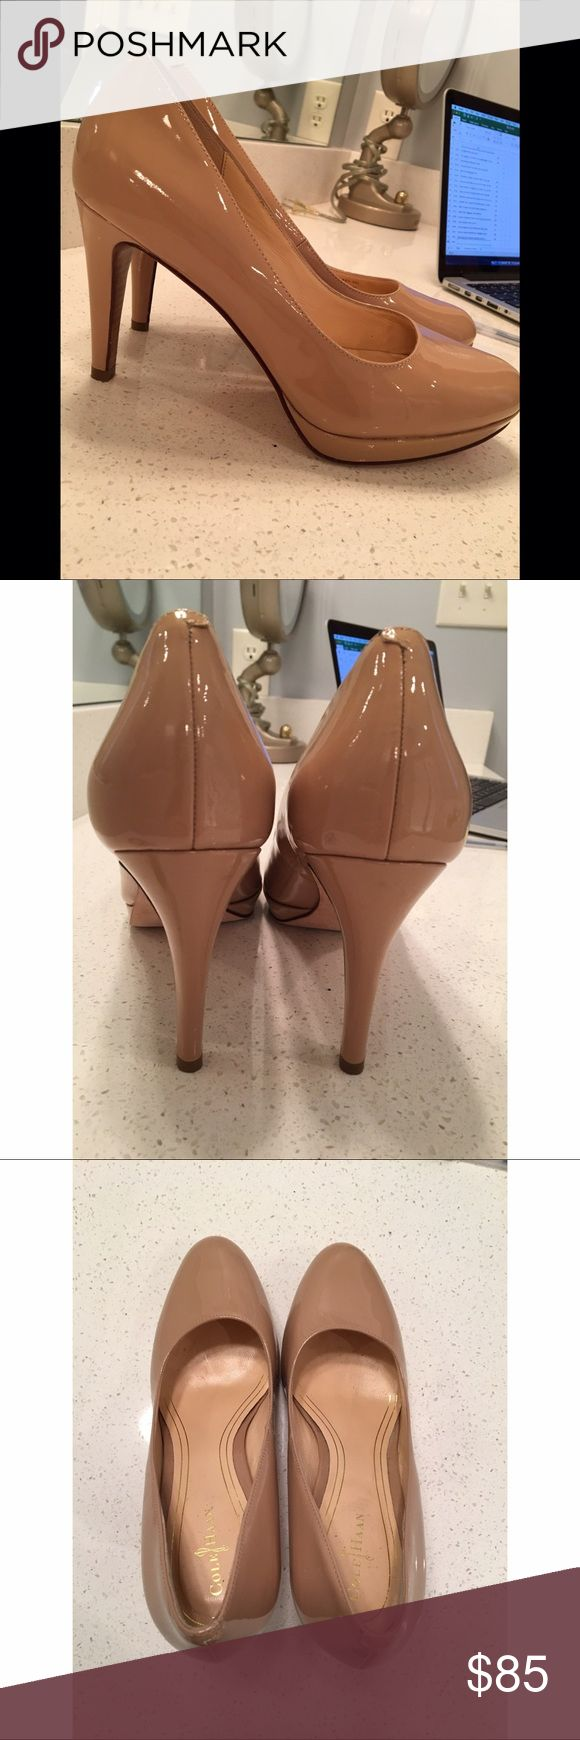 Cole Haan 'NikeAir' Nude Pumps, Size 9B Awesome classic Heels. Cole Haan with NikeAir. Size 9B. Fit like a regular 9. Nude color. Cole Haan Shoes Heels